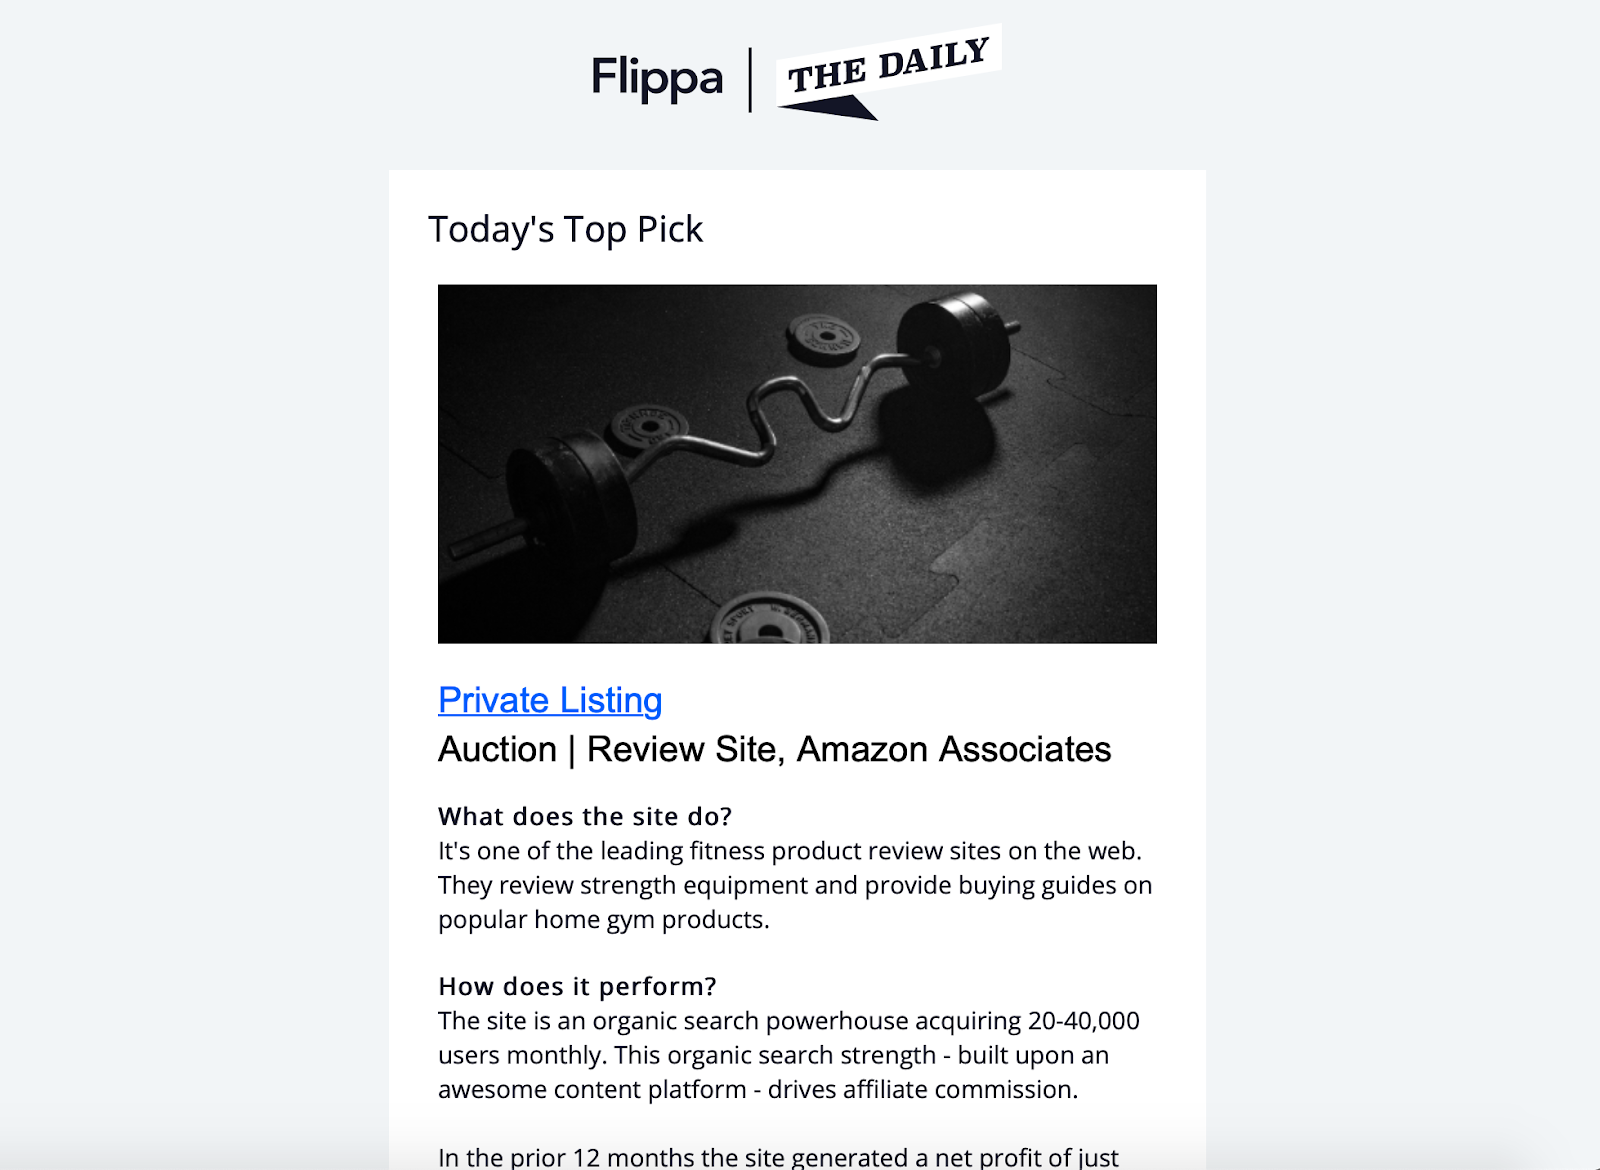 Example of a newsletter from Flippa